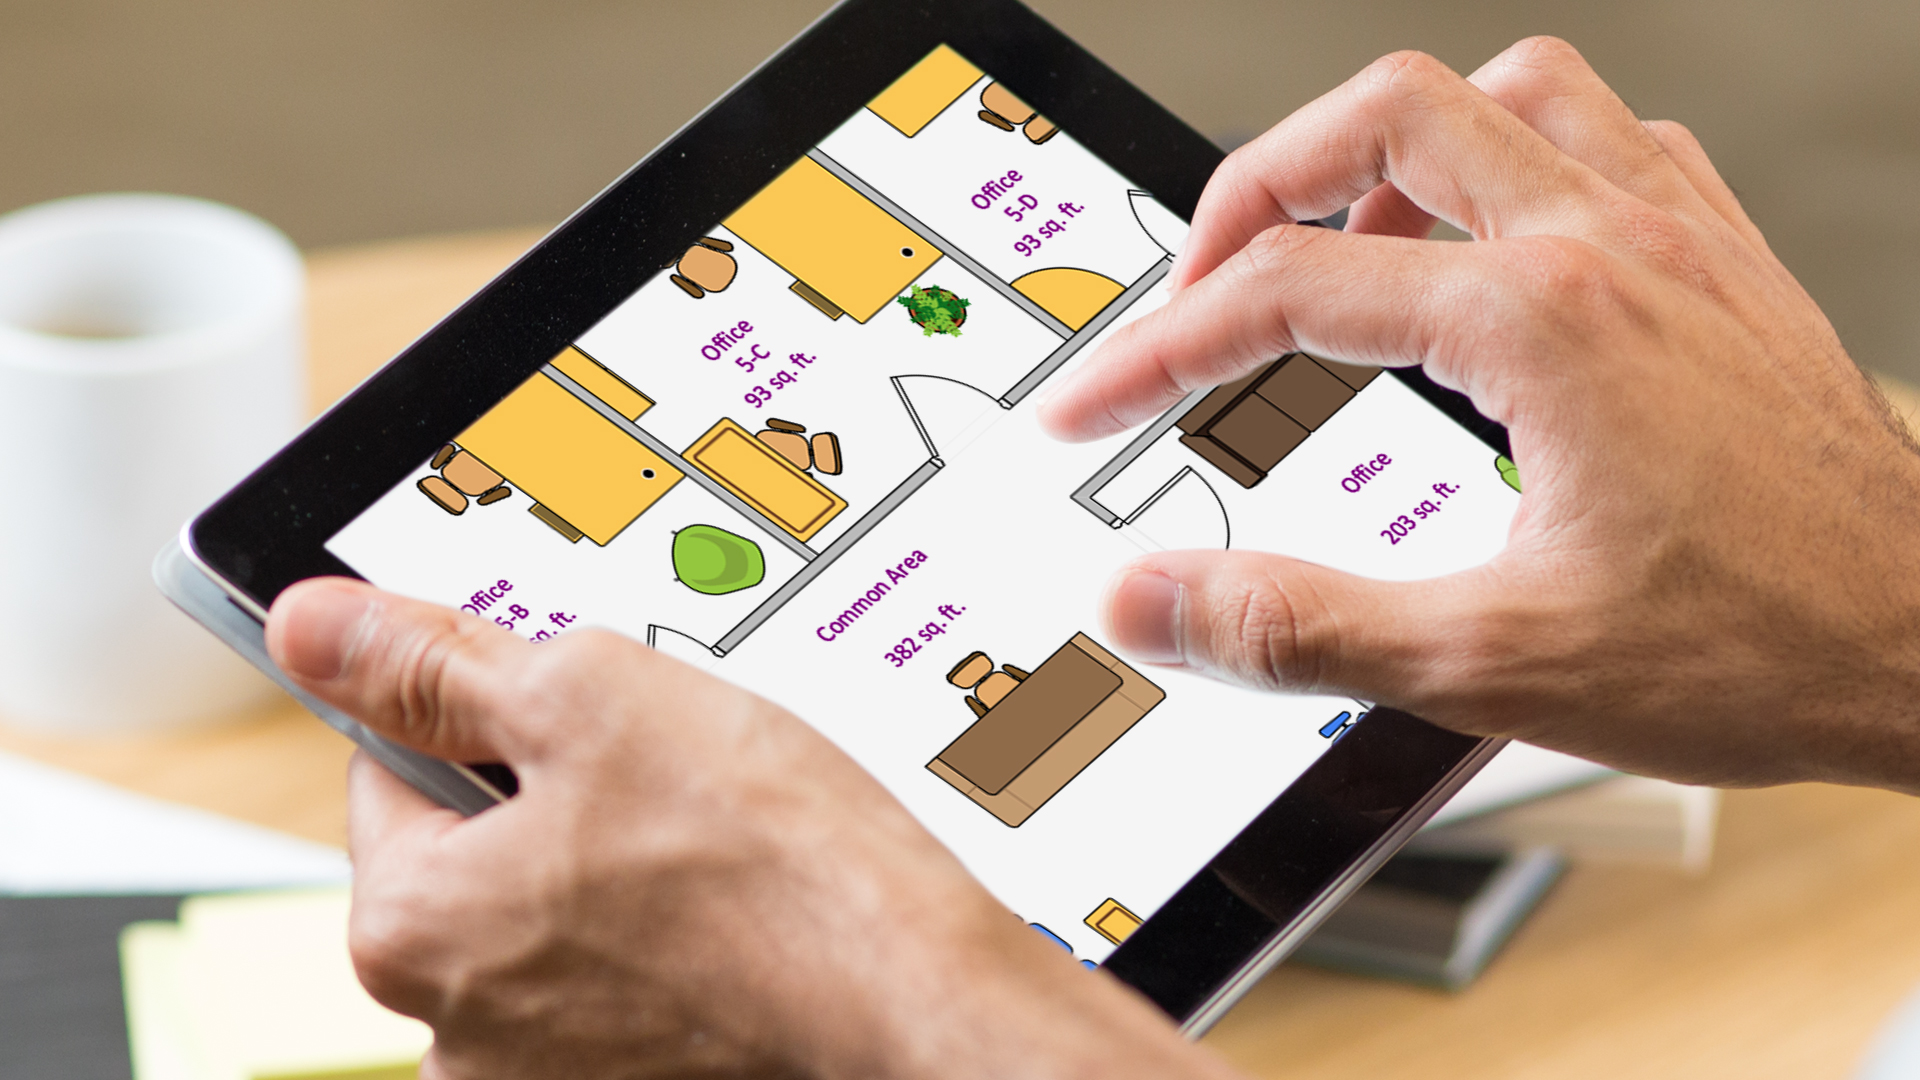 Interact with Visio diagrams - Visio on Mobile and Visio Online: First Look